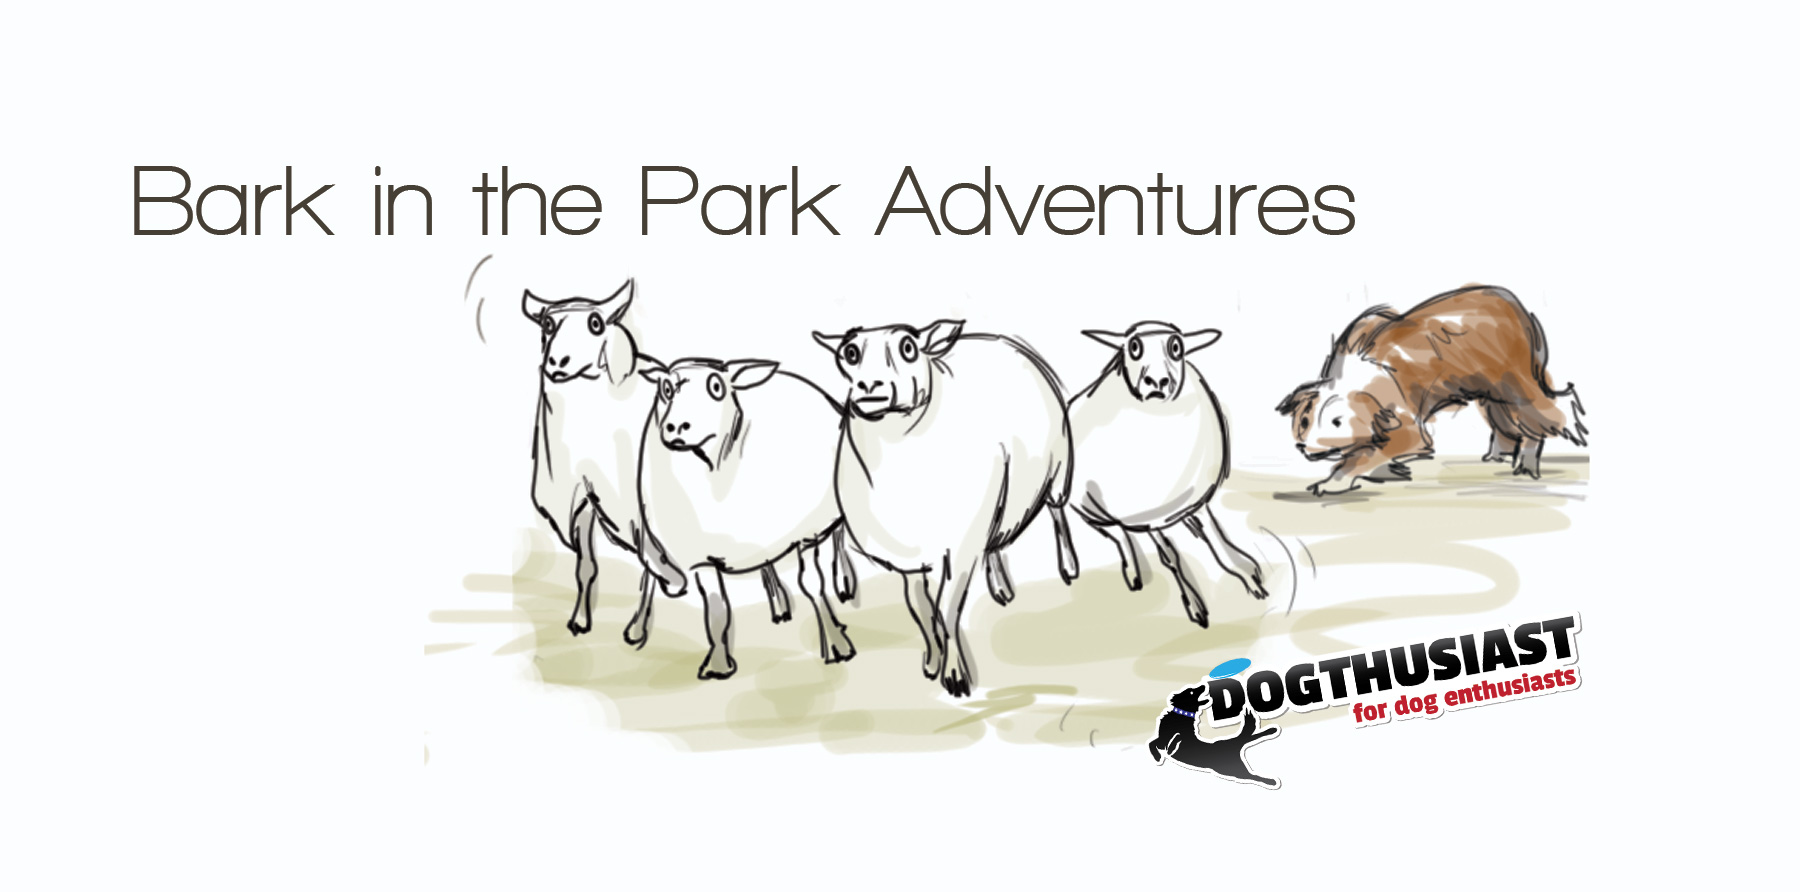 Bark in the Park adventures with sheep and one frustrated border collie #AdventureDogChat